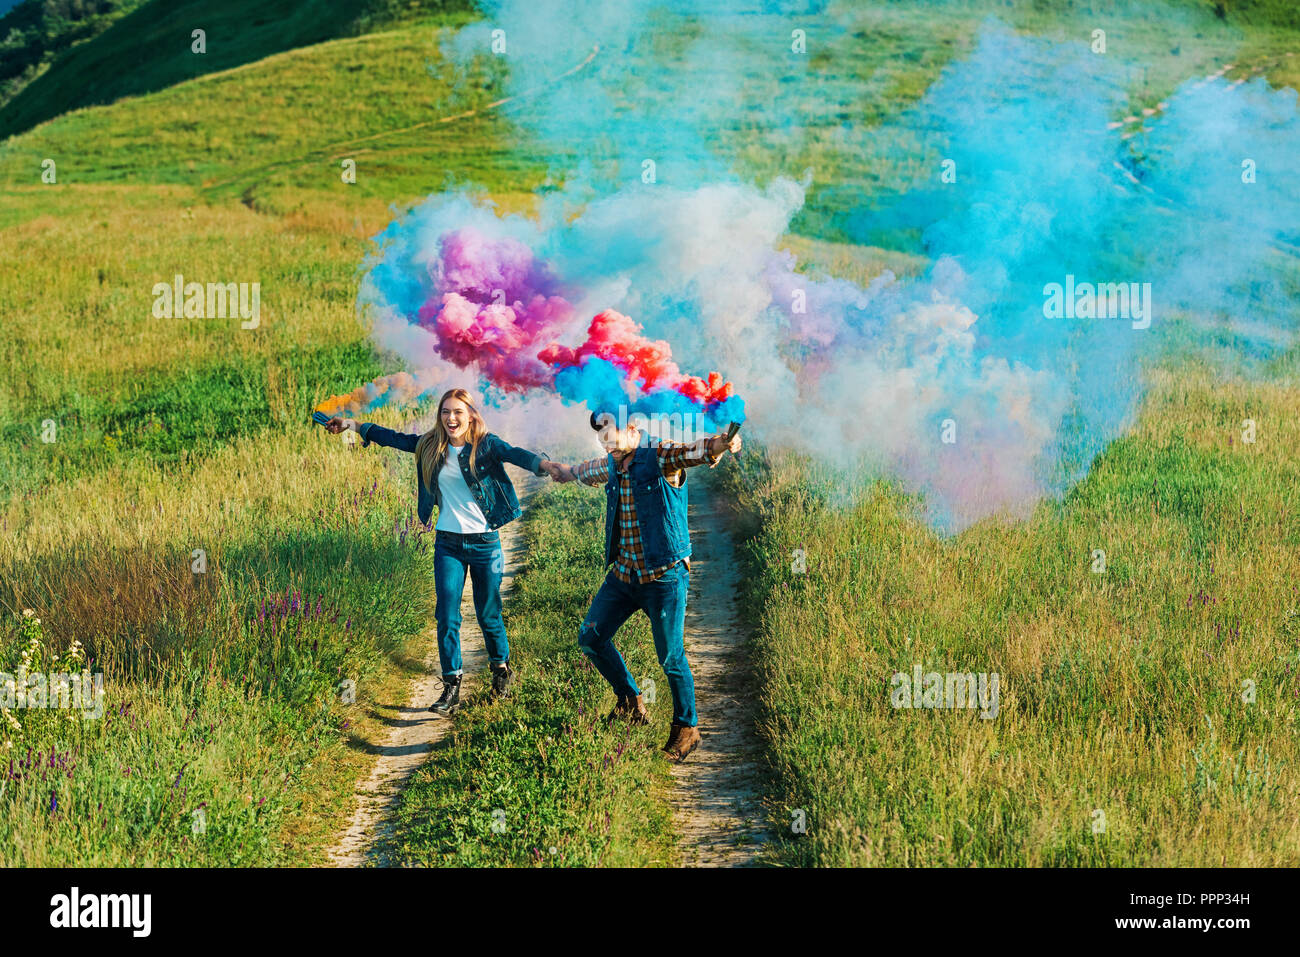 high angle view of couple holding colorful smoke bombs on rural meadow - Stock Image